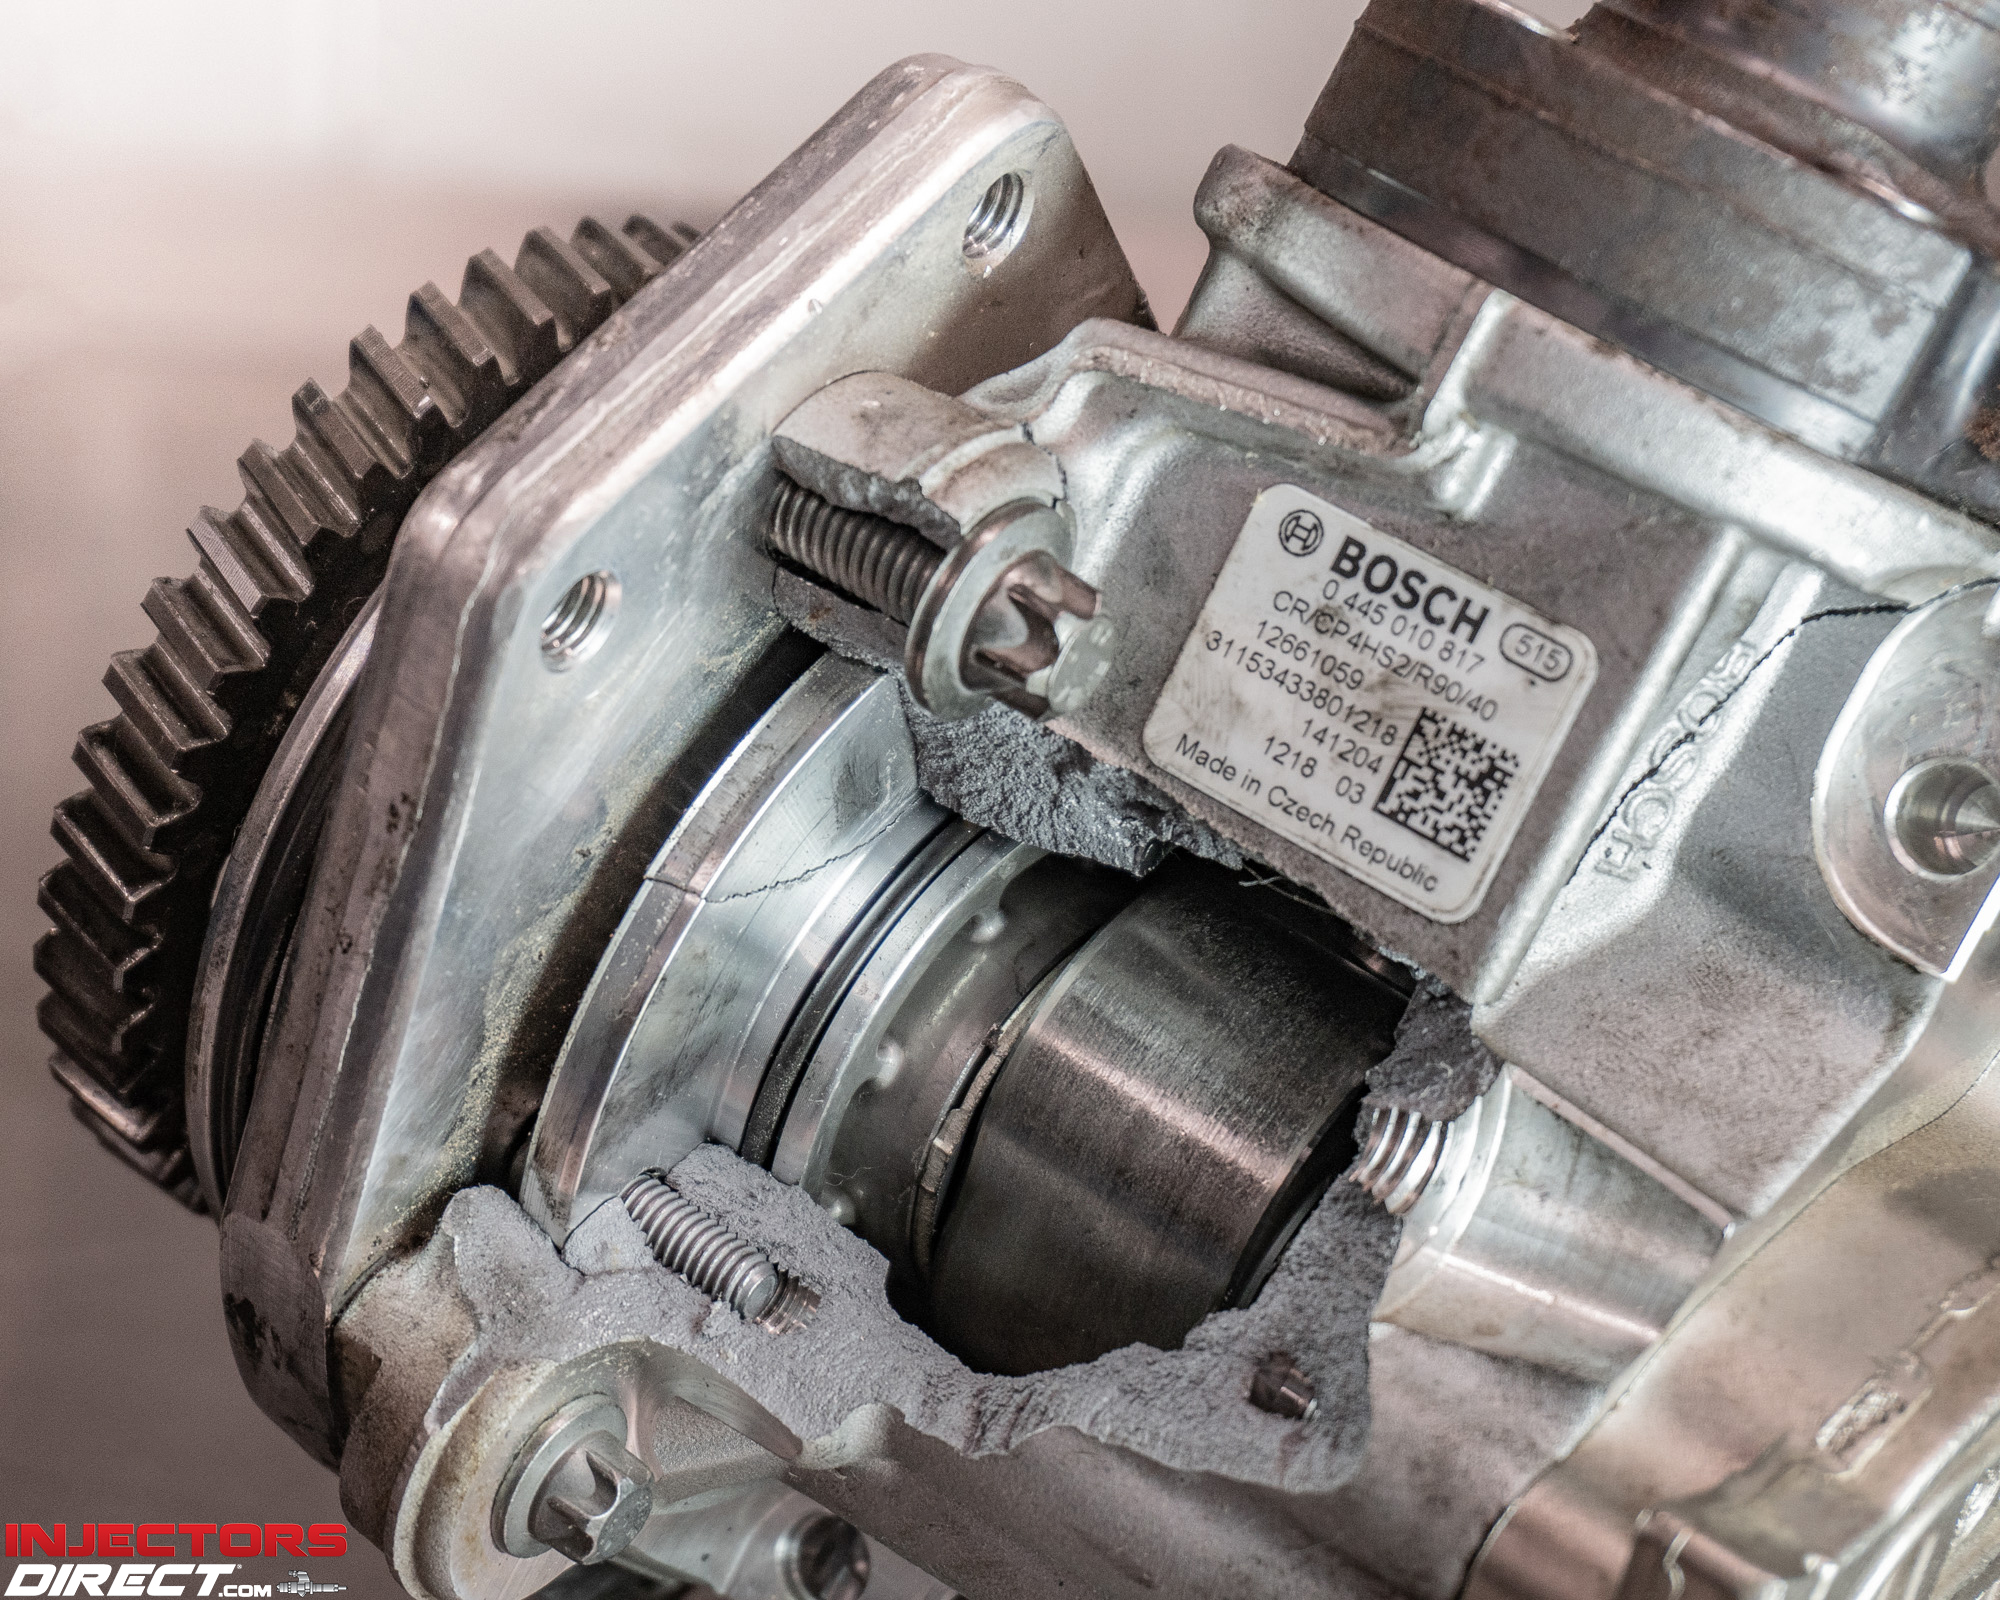 Duramax LML / LGH CP4 Pump Failure – Technical Bulletin